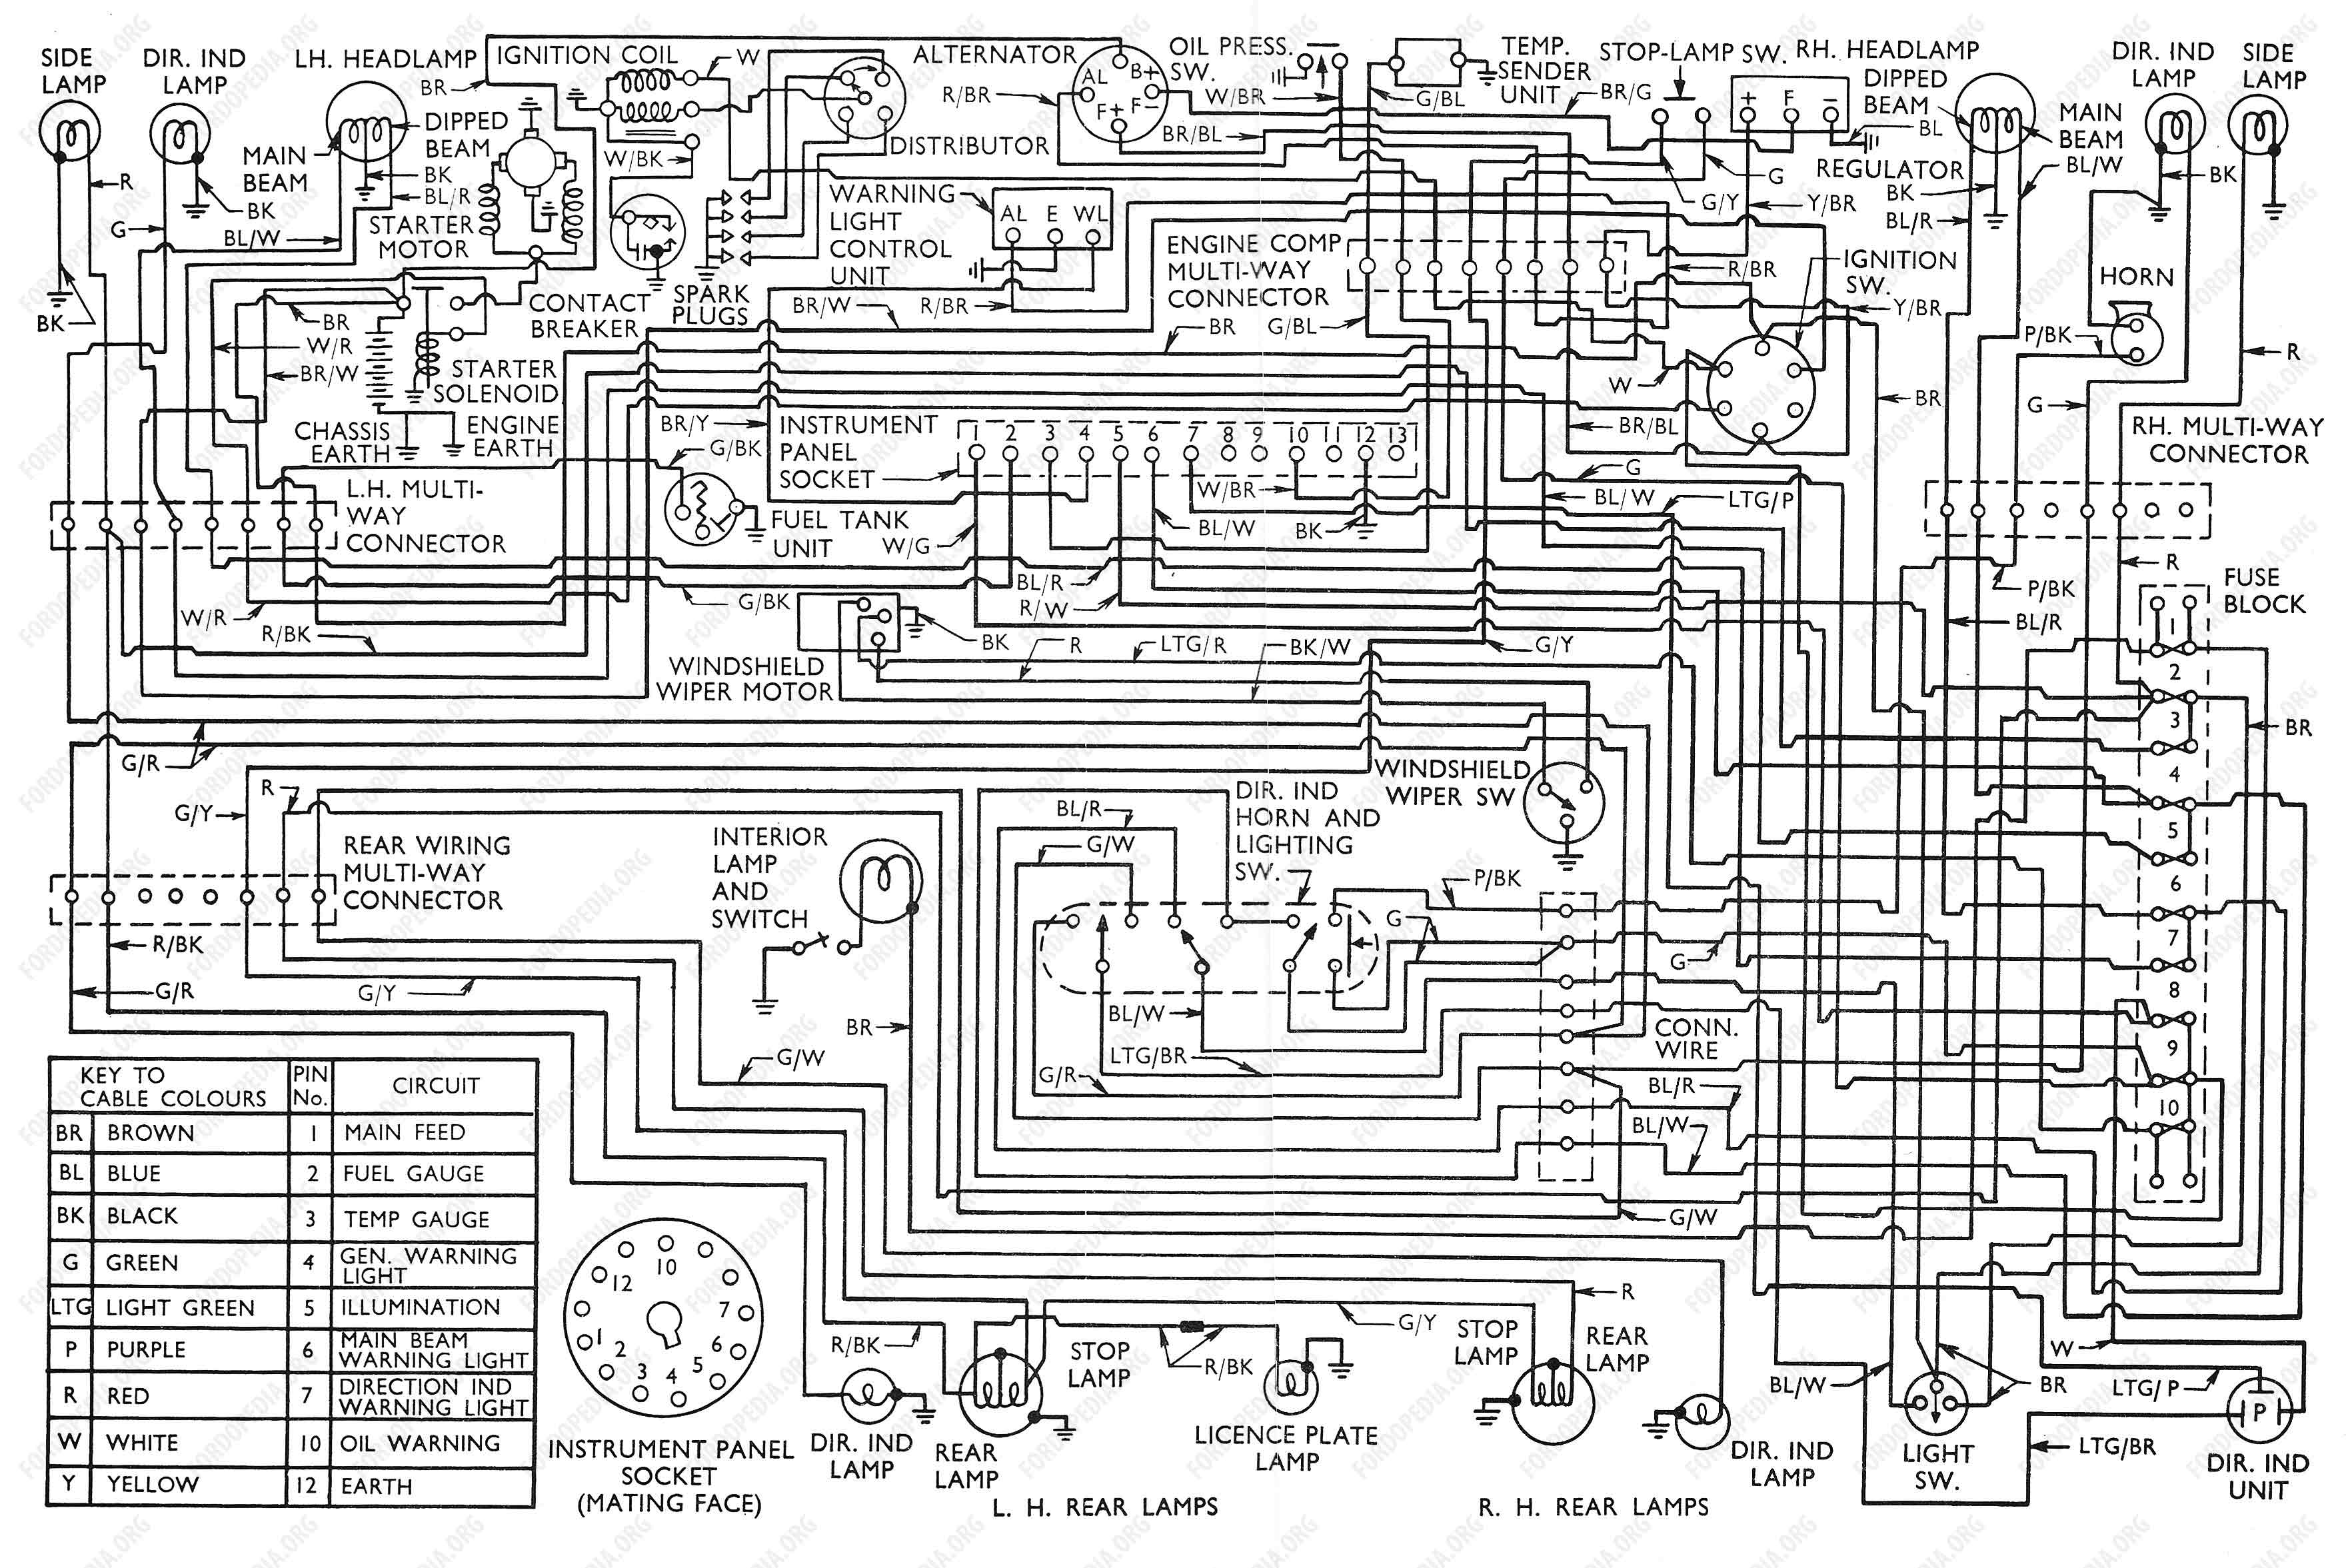 wiring diagram petrol fordopedia org ford transit electrical diagram wiring schematic at soozxer.org